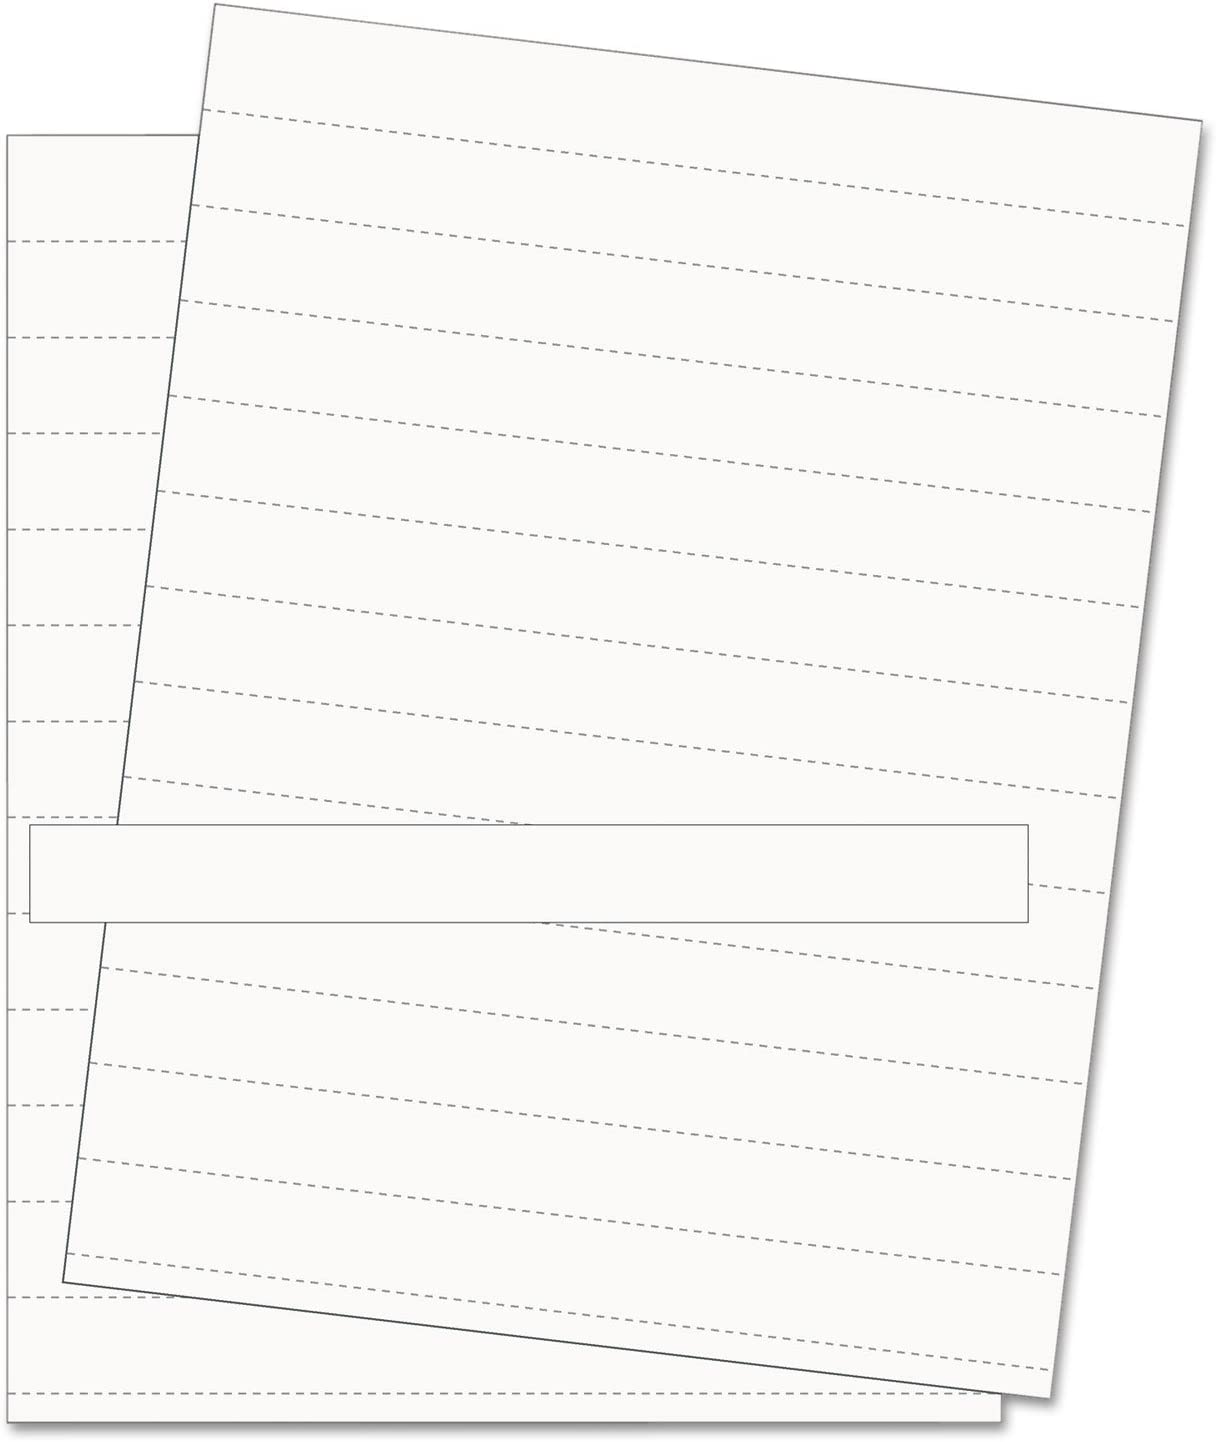 Deluxe BVCFM1615 - Data Sheet Spasm price Replacement Card